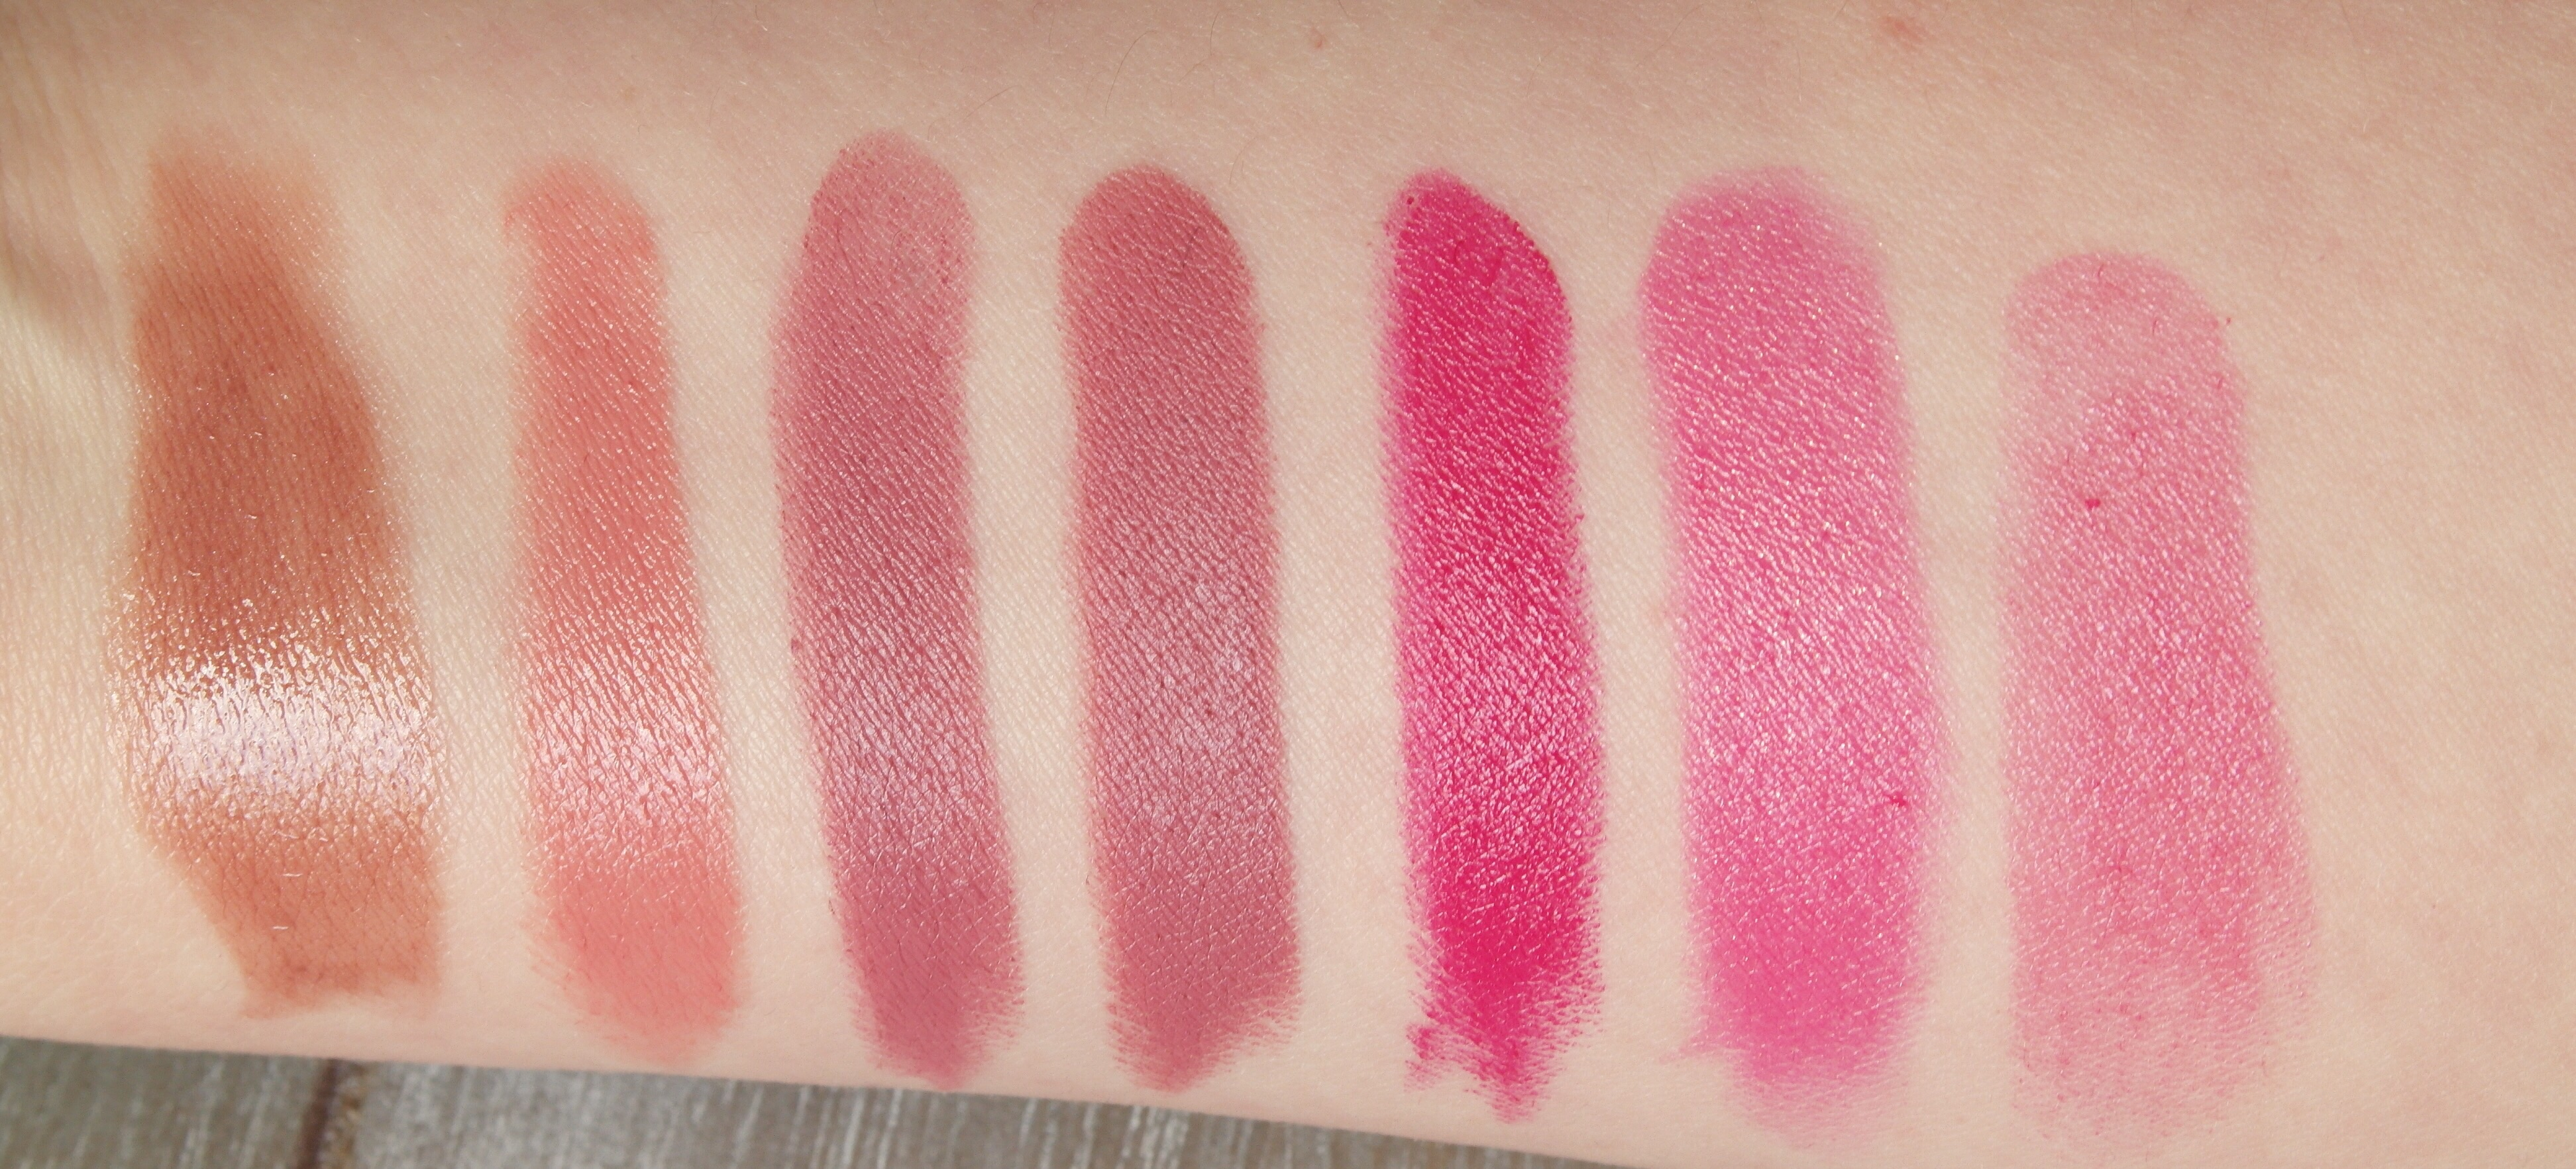 Swatches - Deauville, Pretty, Honesty, Anna, Velvet Underground, Incorrigible, Rose Delice